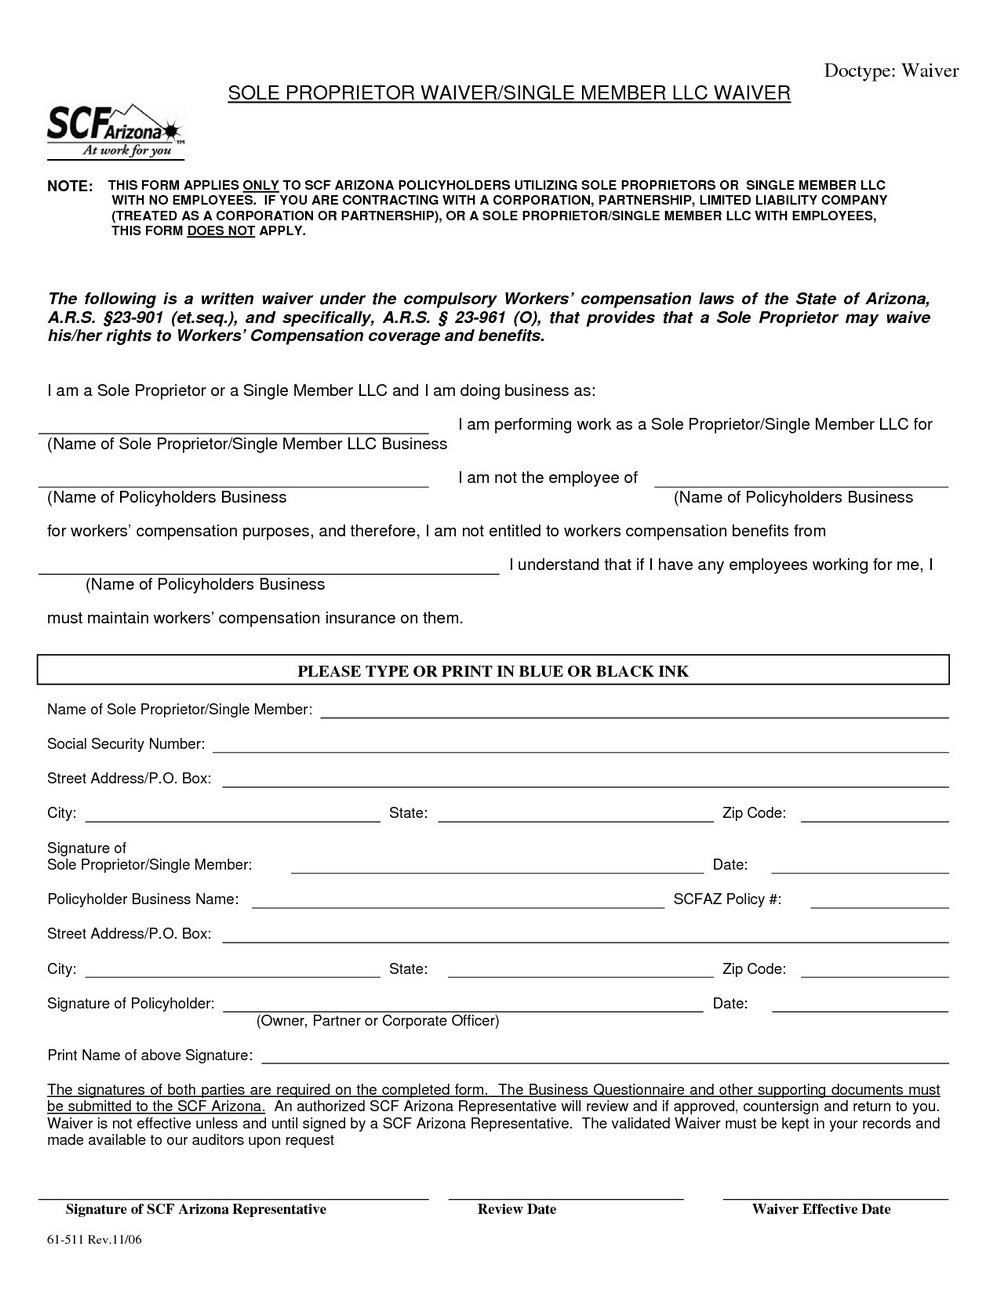 Workers Compensation Waiver Form For Independent Contractors New York